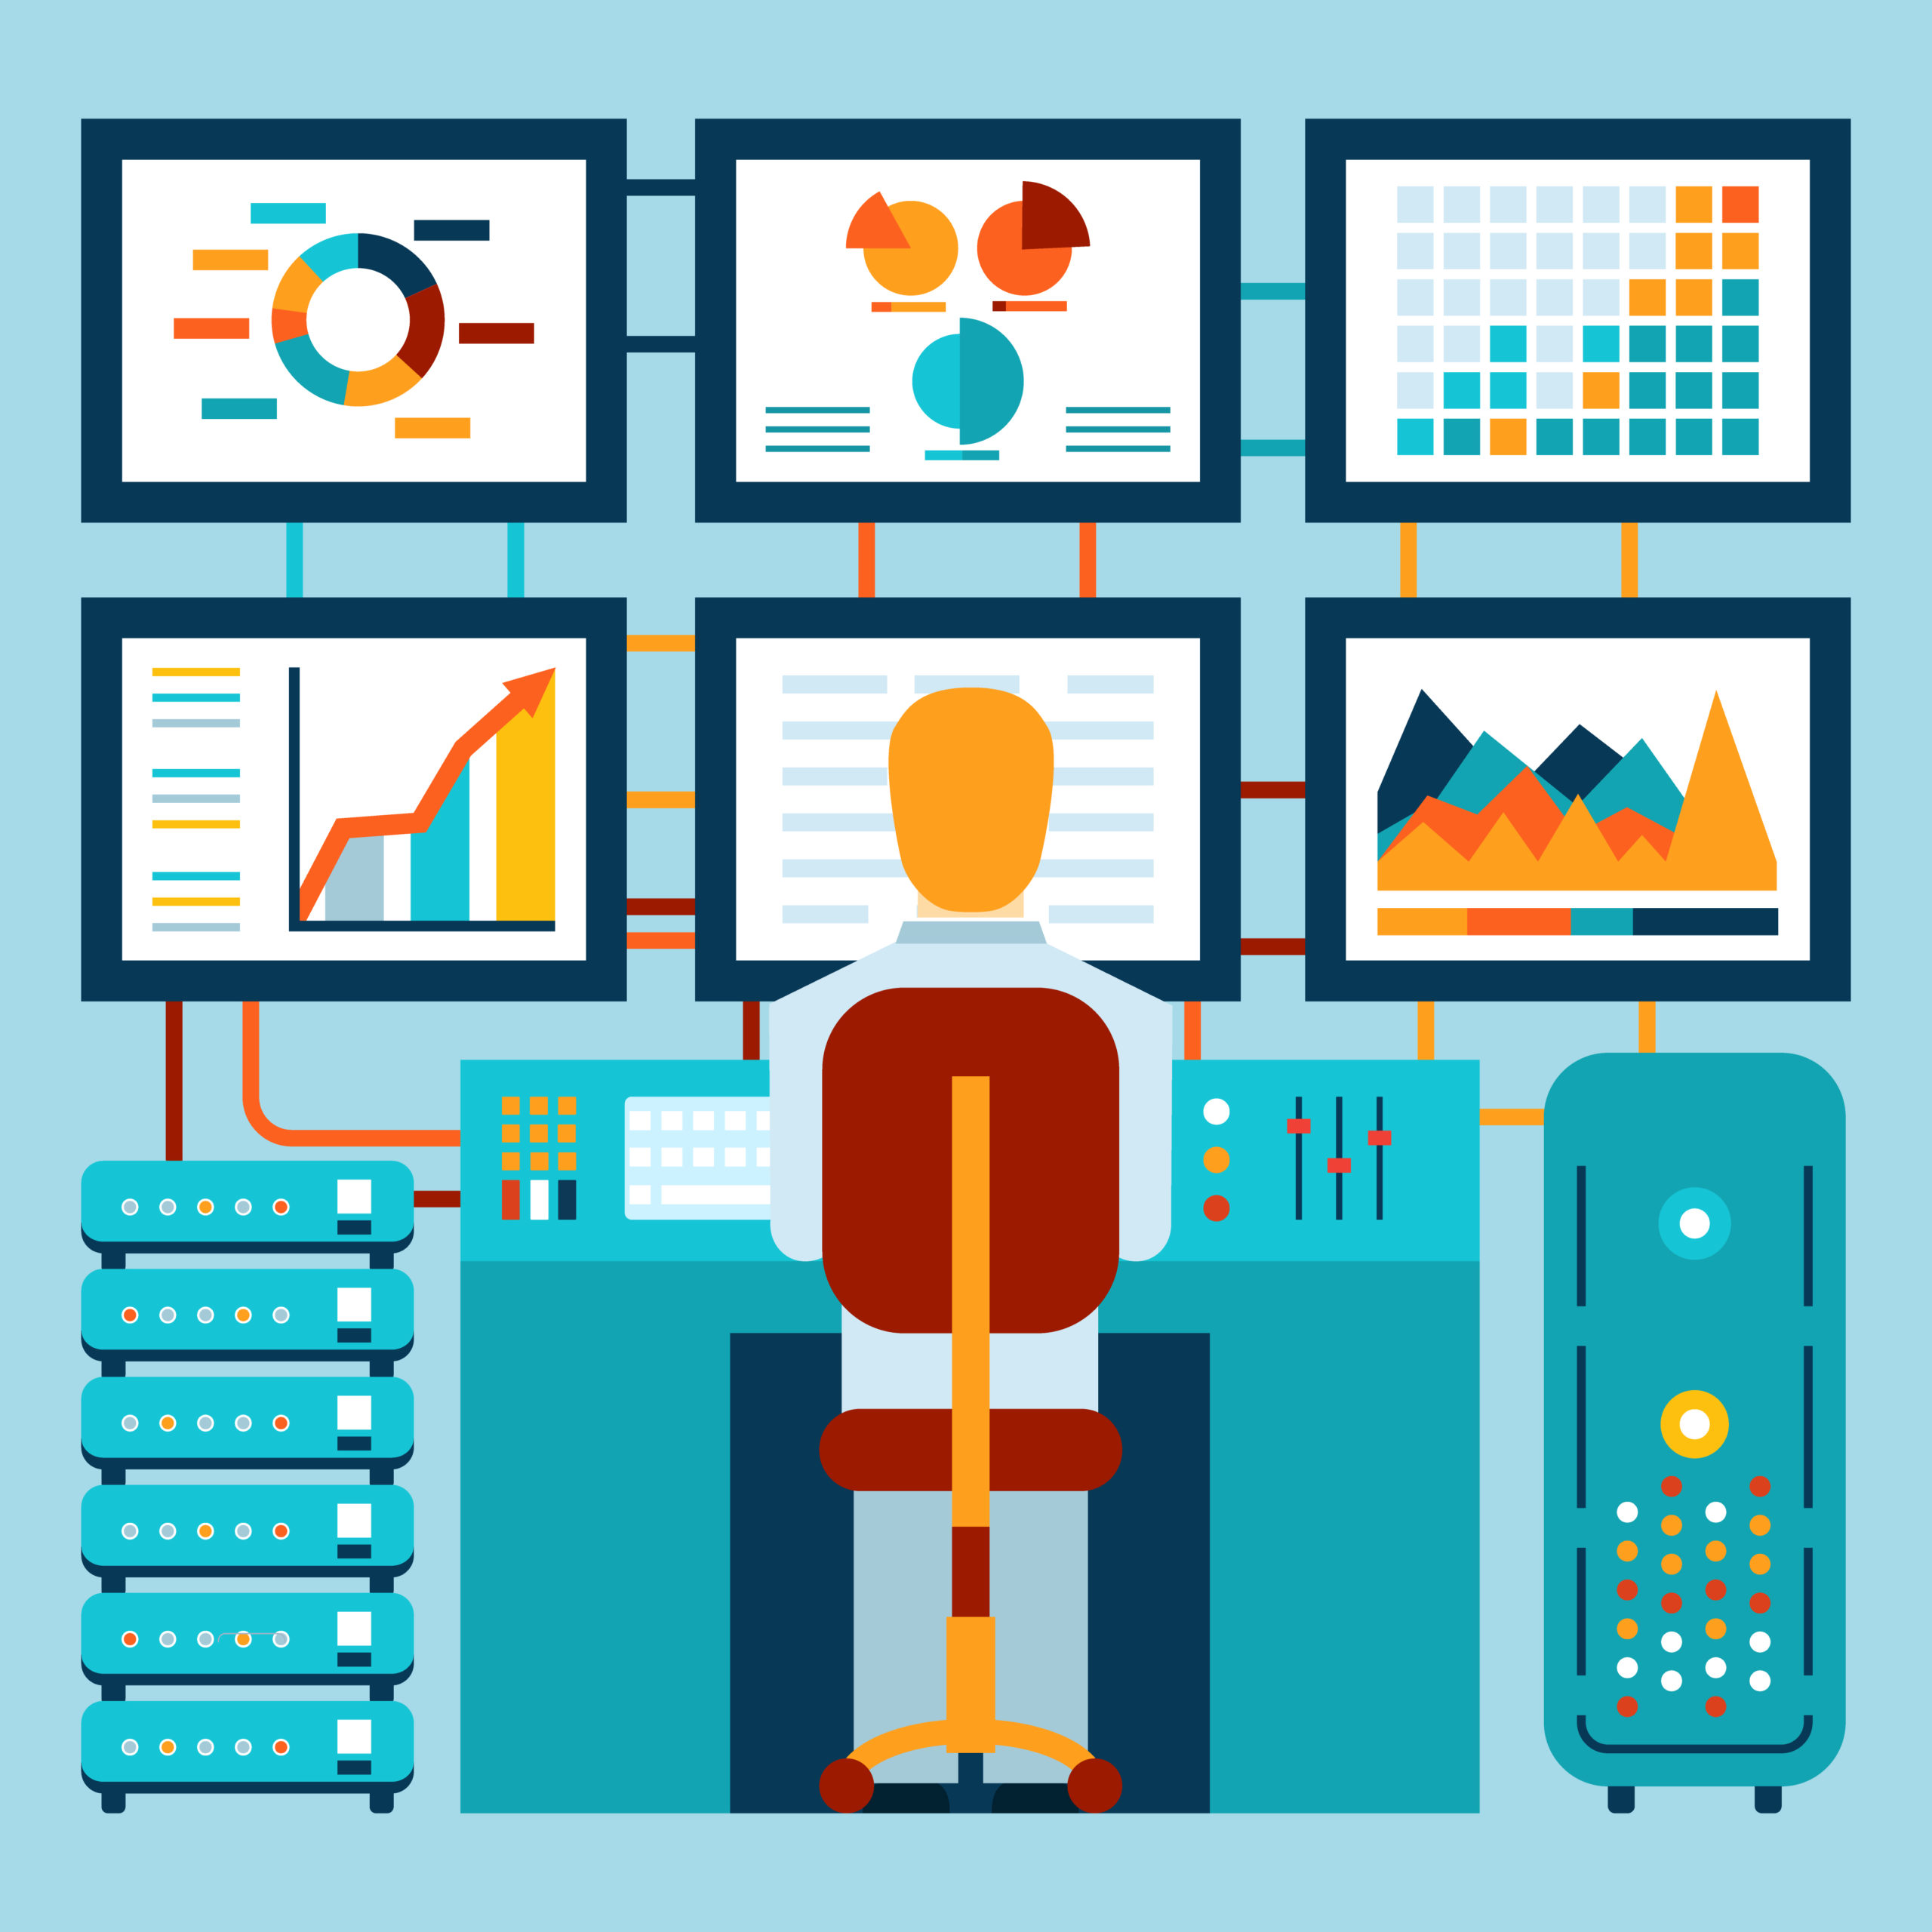 Analysis of information on dashboard in flat style. Vector illustration